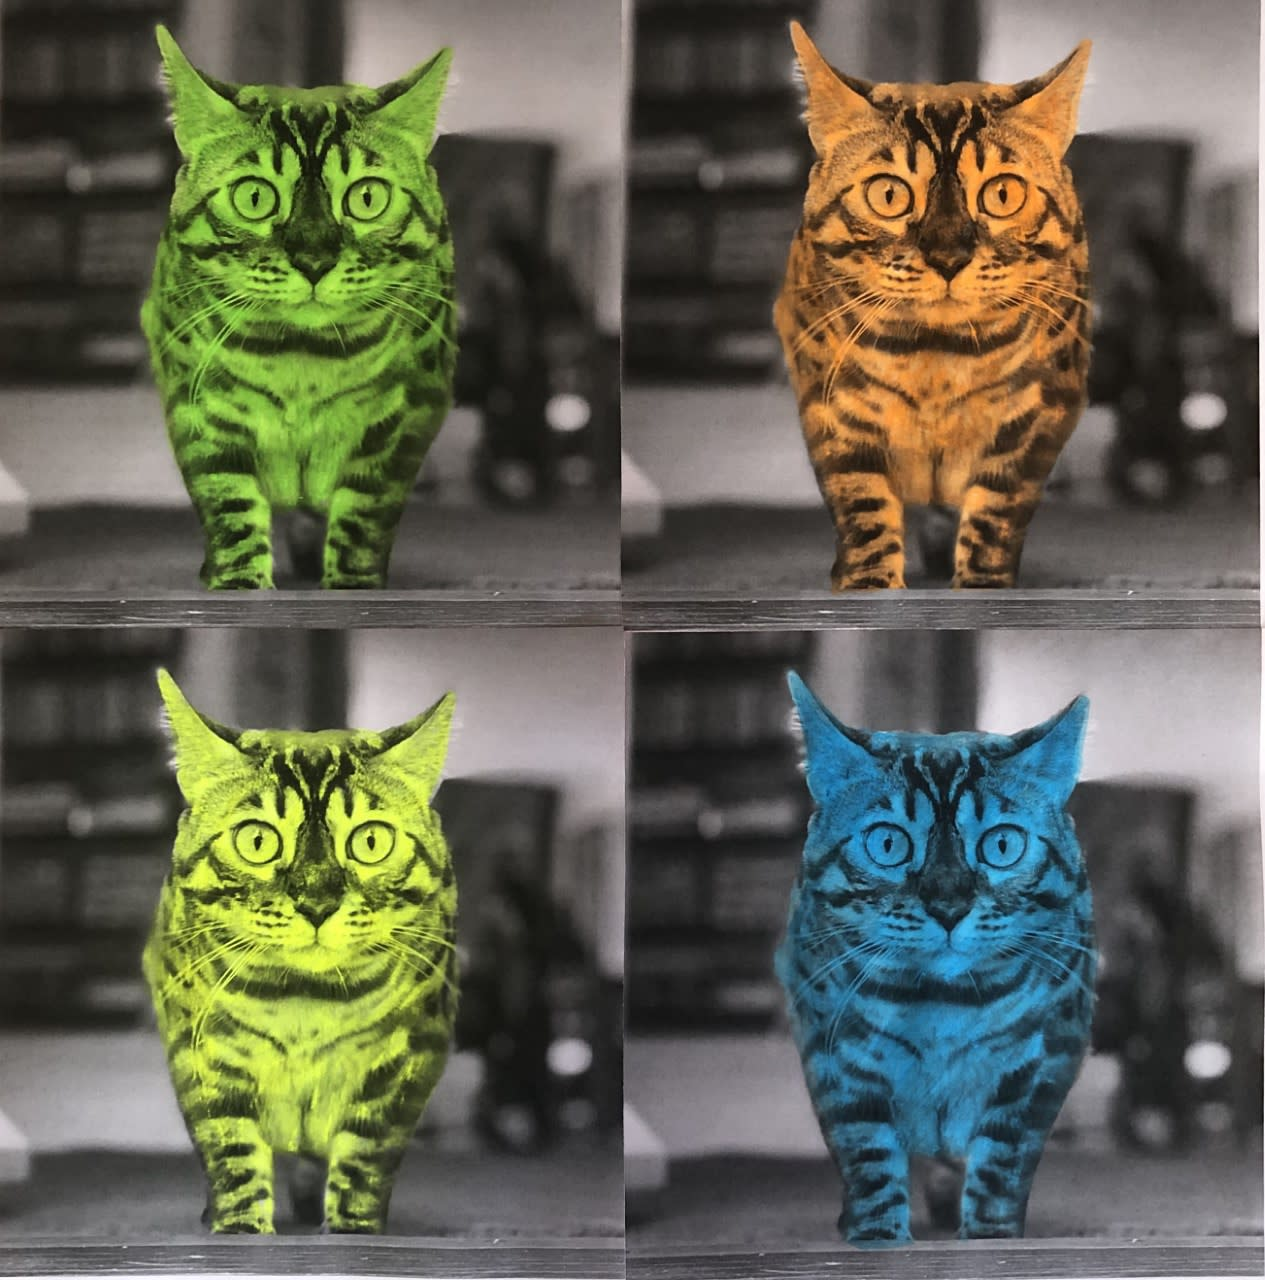 Flynn Wilson age 7. His creation of his cat inspired by Andy Warhol.